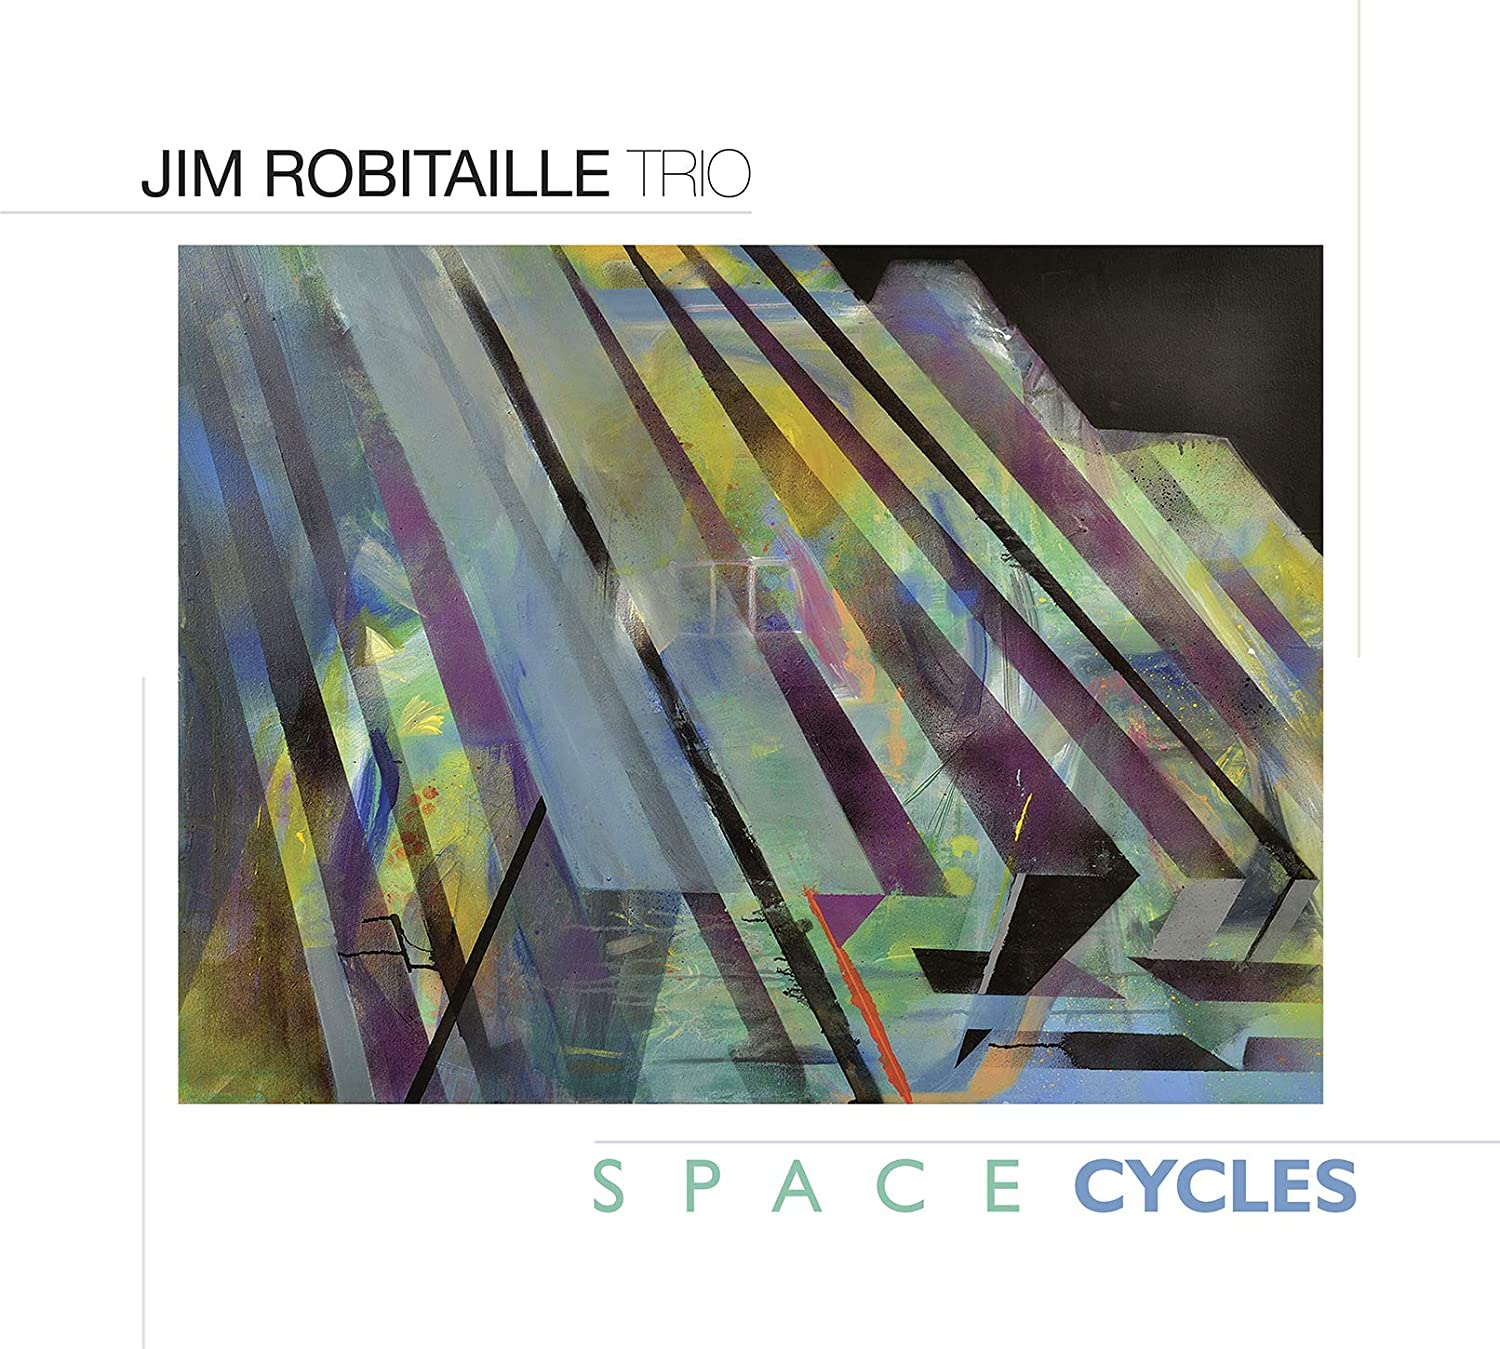 Jim Robitaille Group - Space Cycles - Amazon.com Music